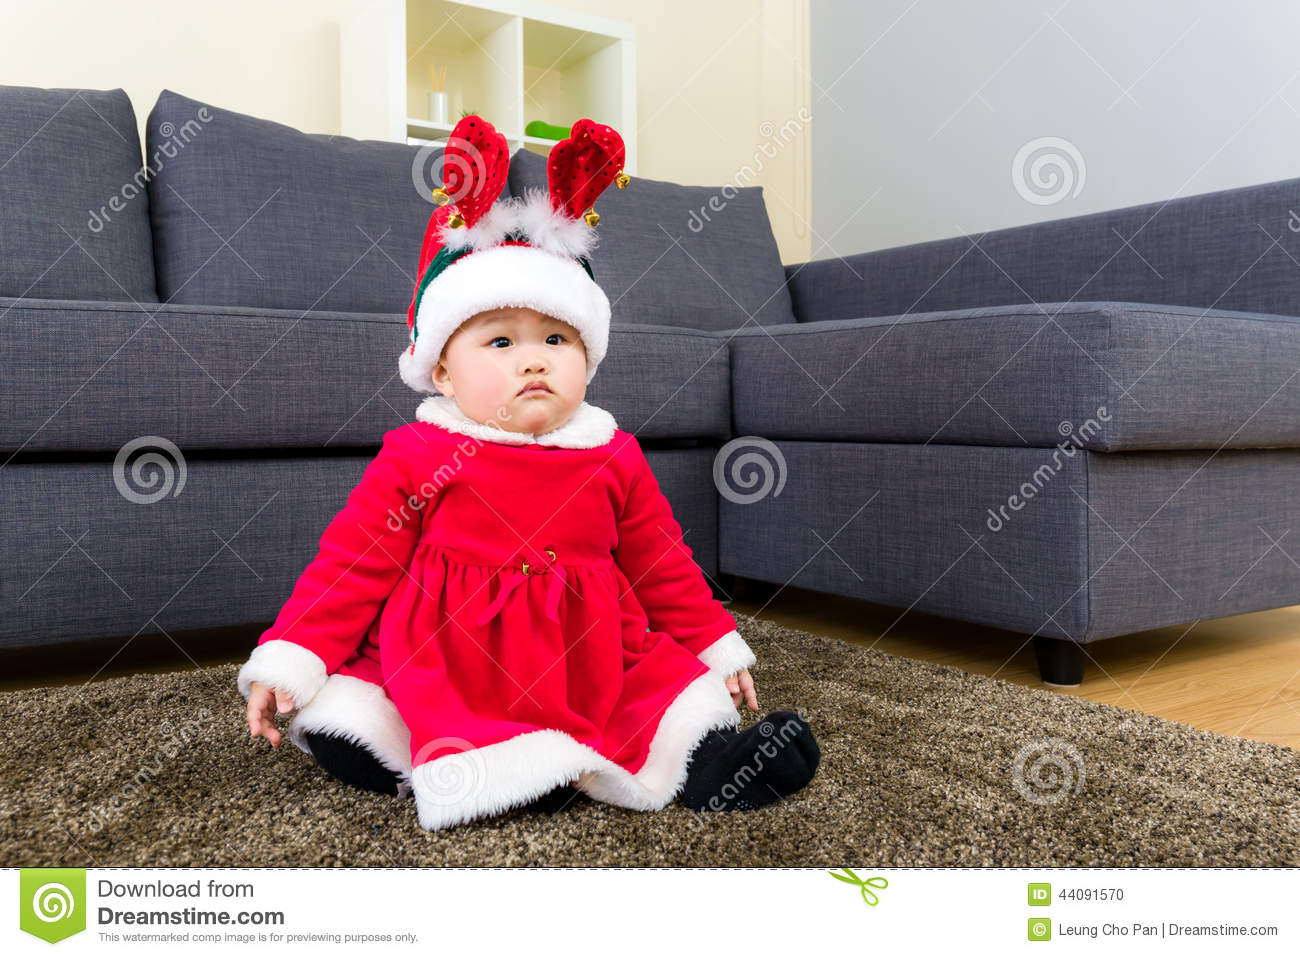 Baby girl with christmas dressing and seating on carpet